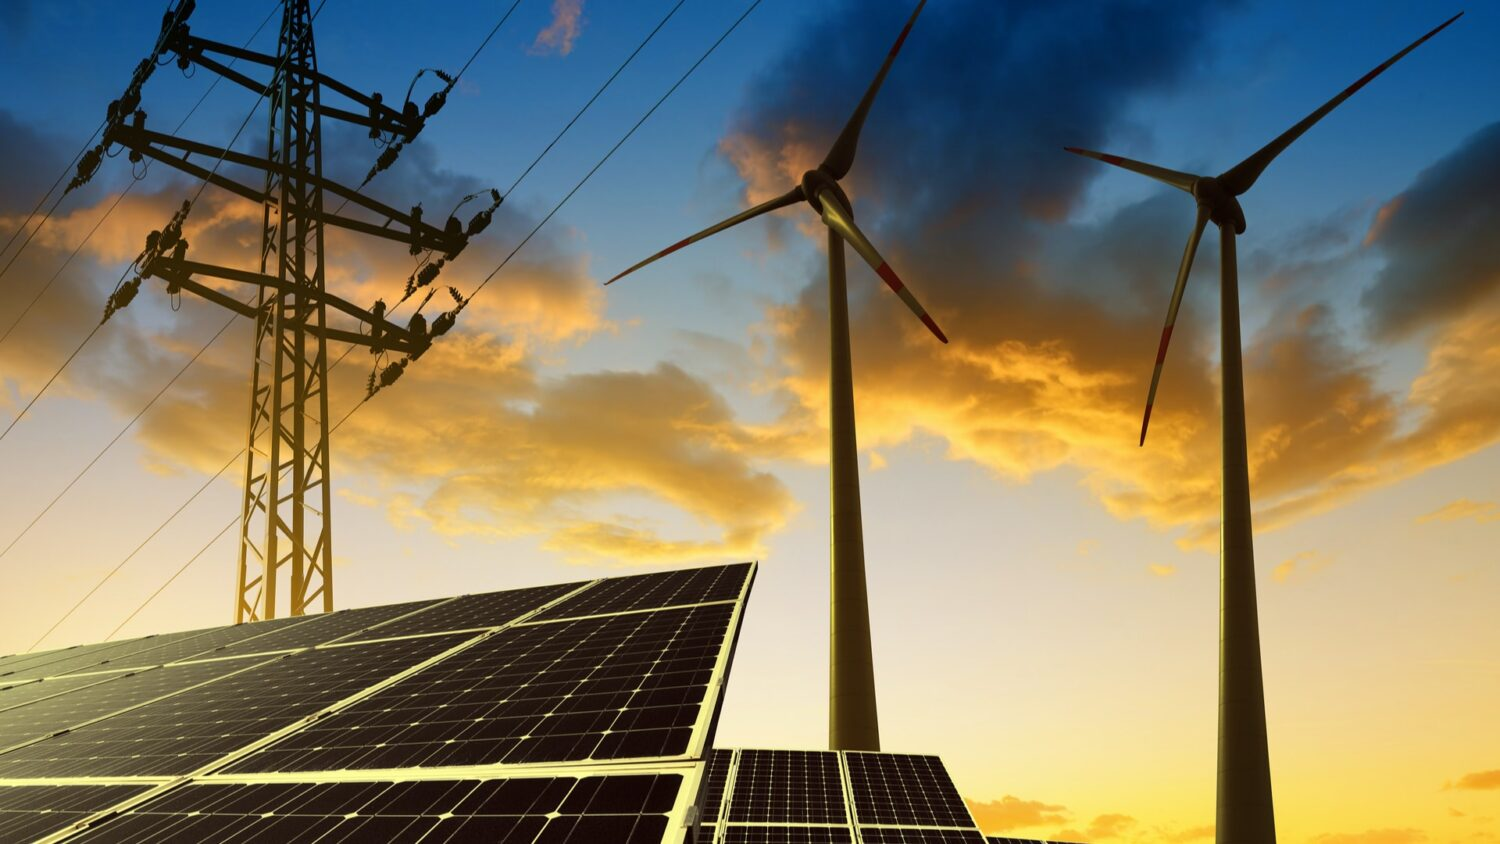 ClearGen has Blackstone and GSO backing for clean and distributed energy storage